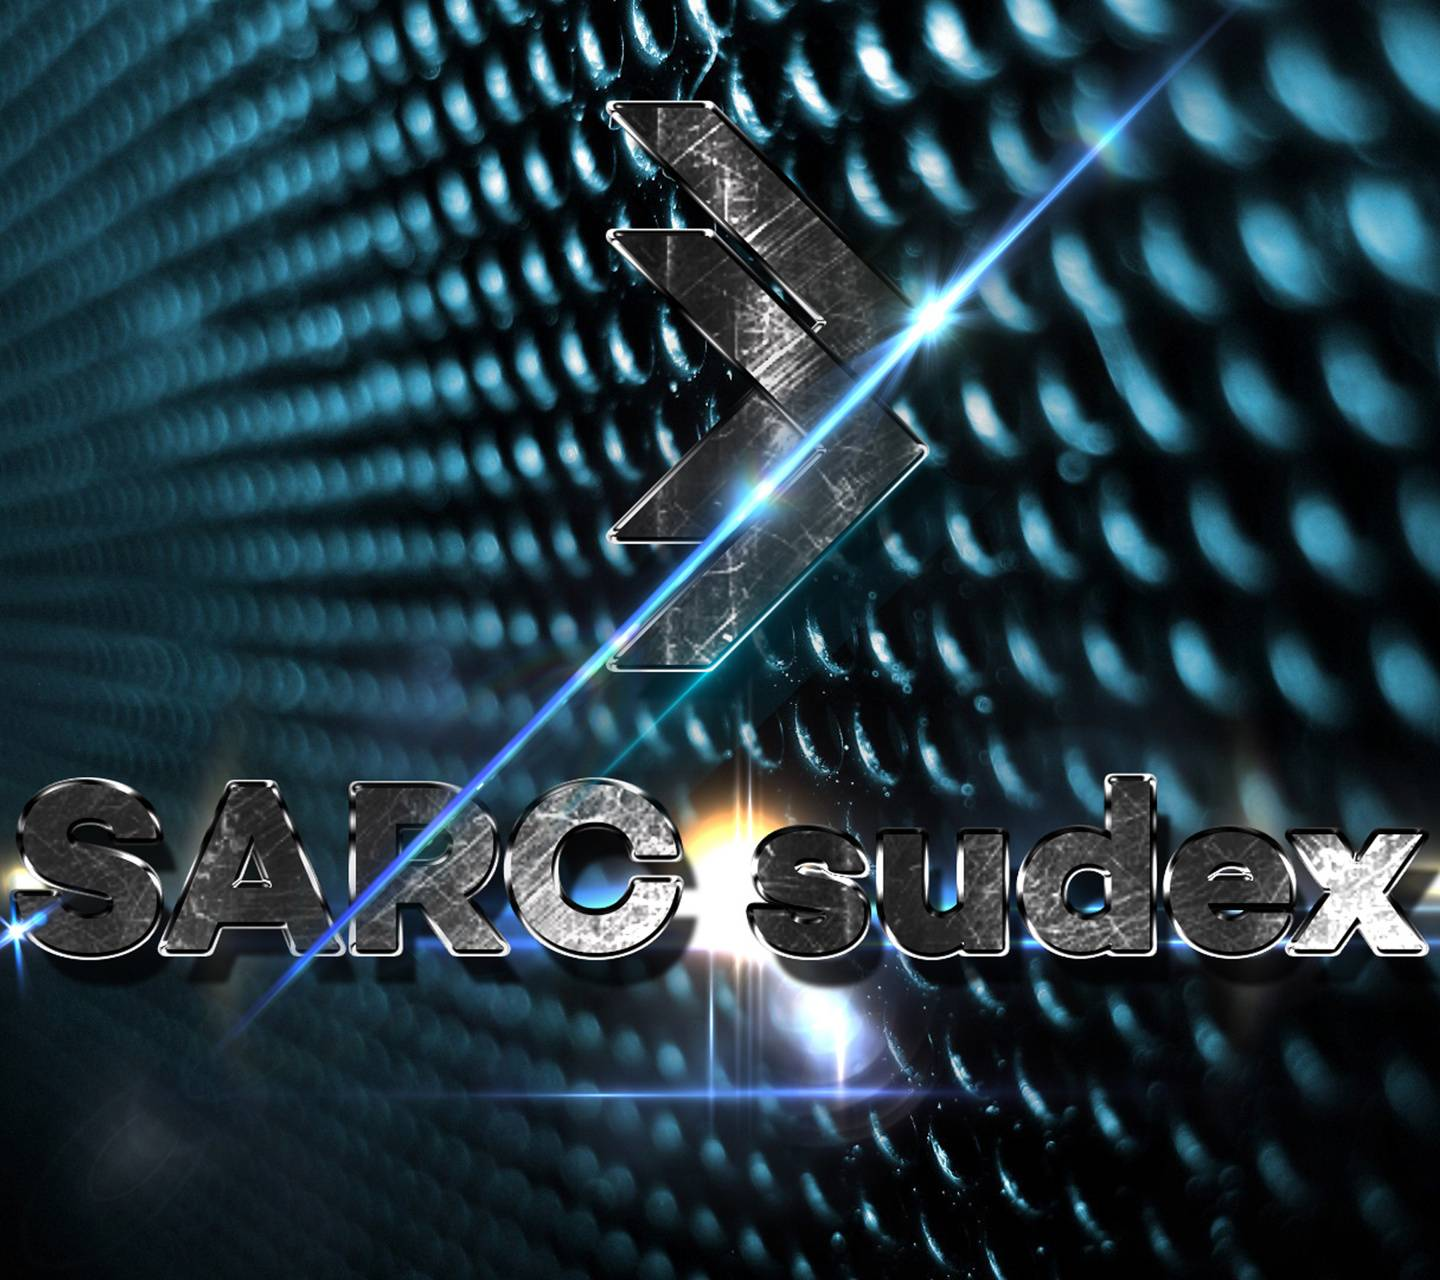 Sarcsudex blue metal